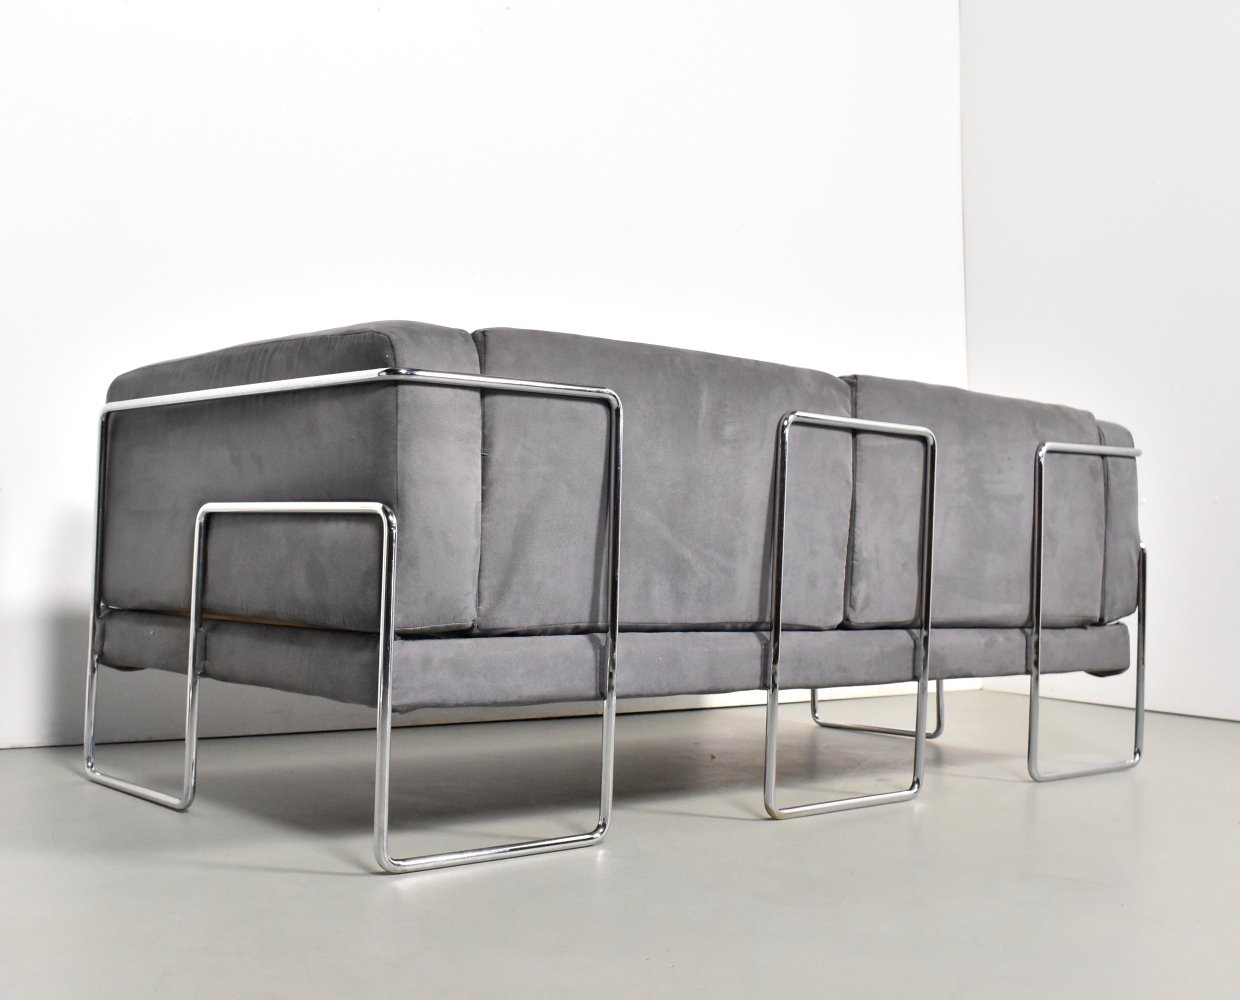 Pen Club sofa by Kwok Hoi Chan for Steiner, 1960s